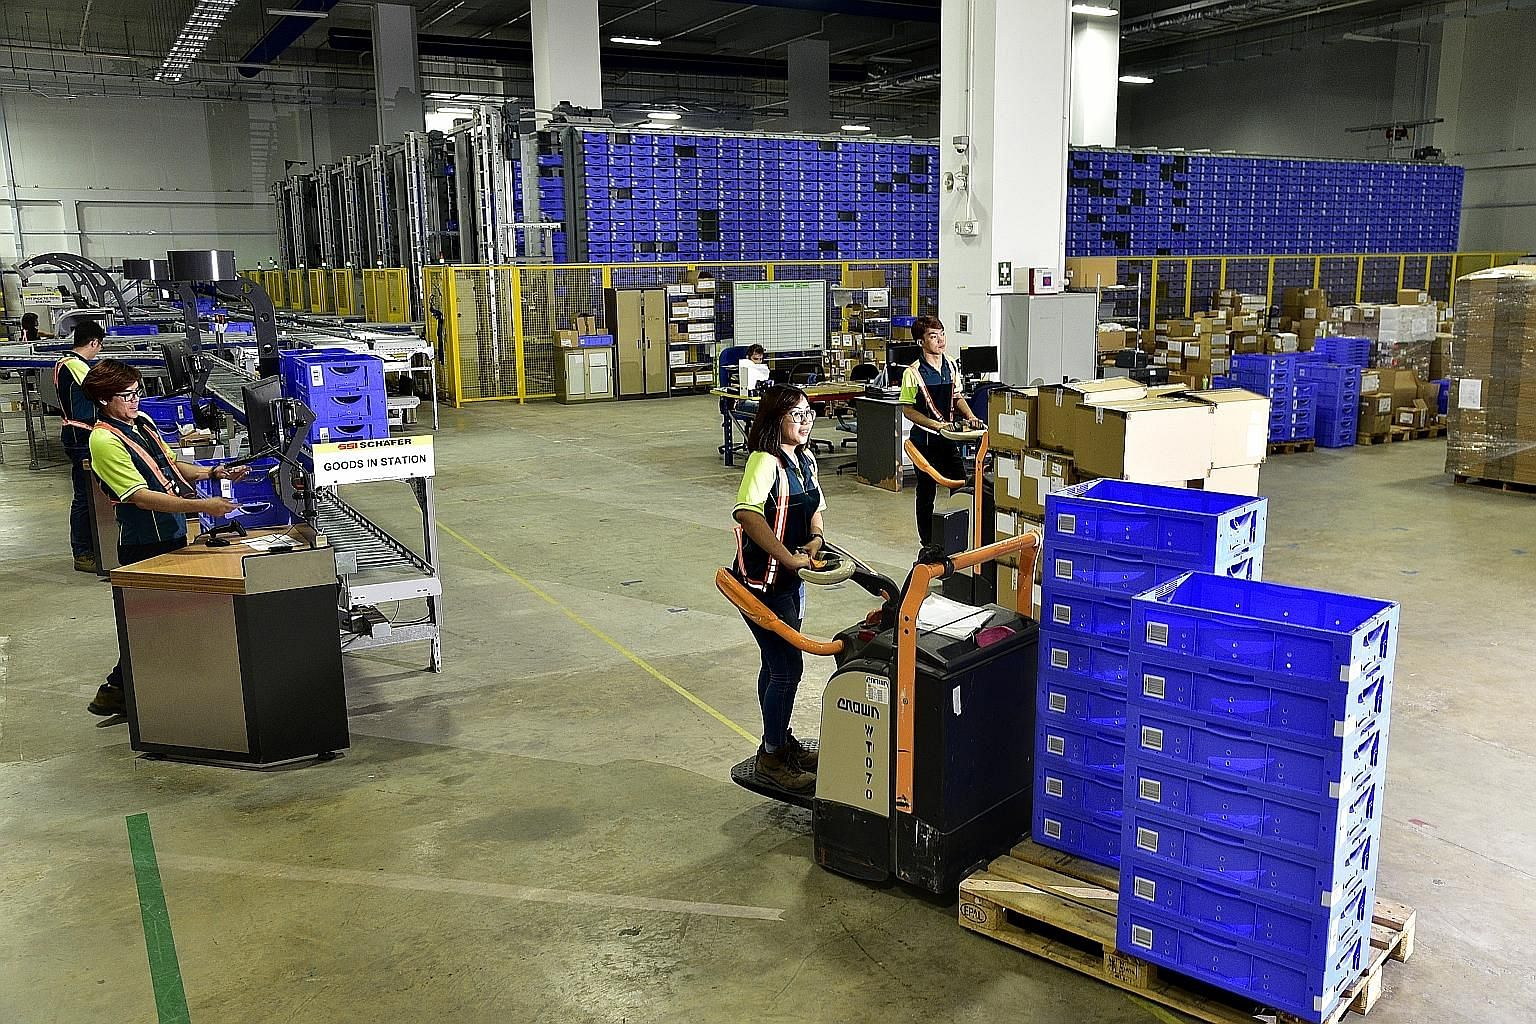 The Colliers International report noted that technologies and new business models are reshaping the Asian logistics sector, which is under pressure to deliver better service at an ever lower cost. The report also noted that demand for warehouse space